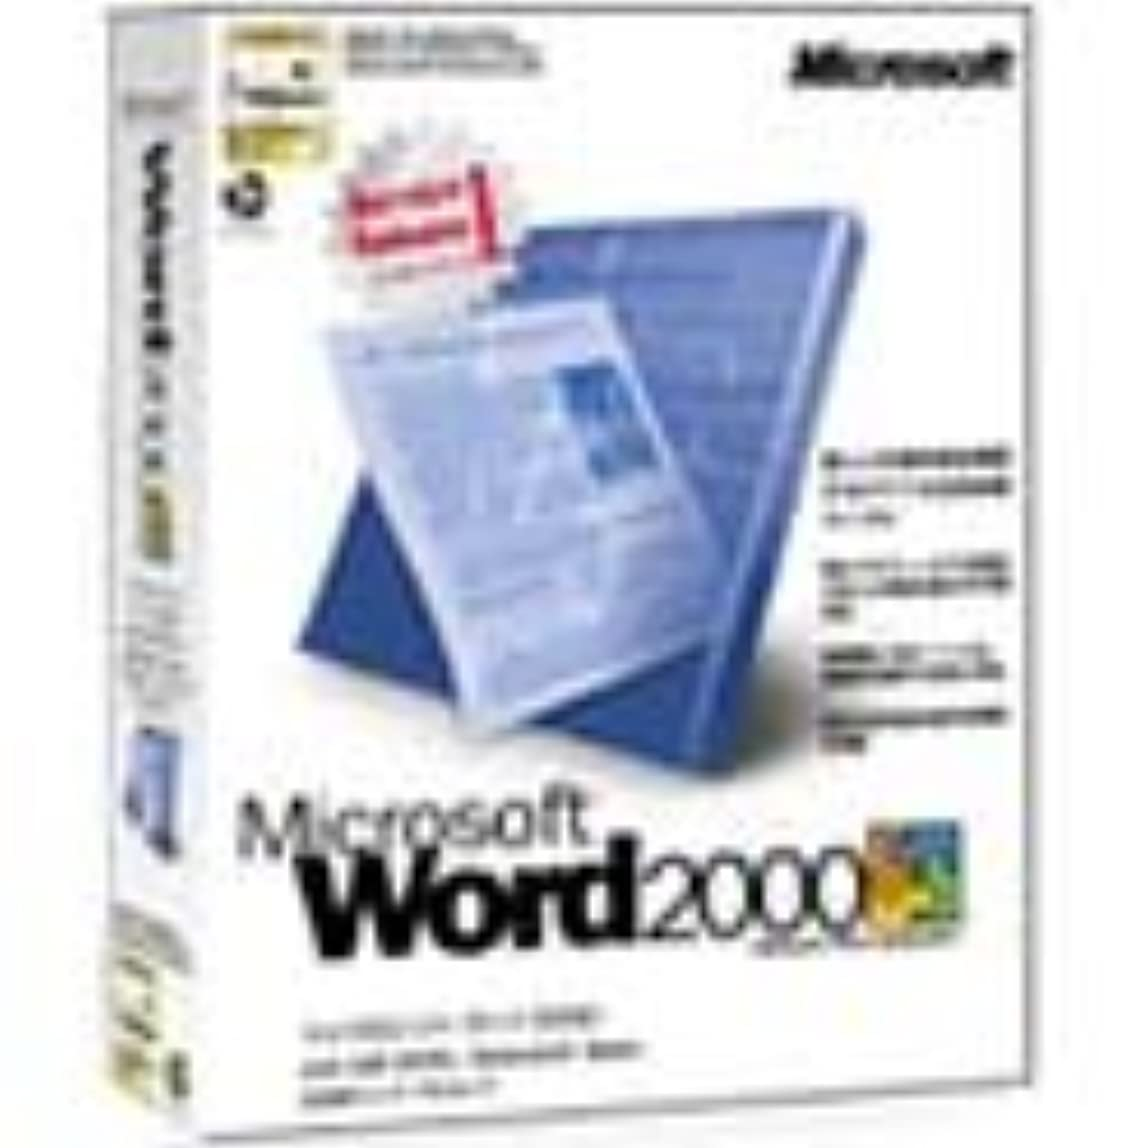 先例器具起点【旧商品】Microsoft Word2000 with IME2000 Bookshelf Basic Service Release 1